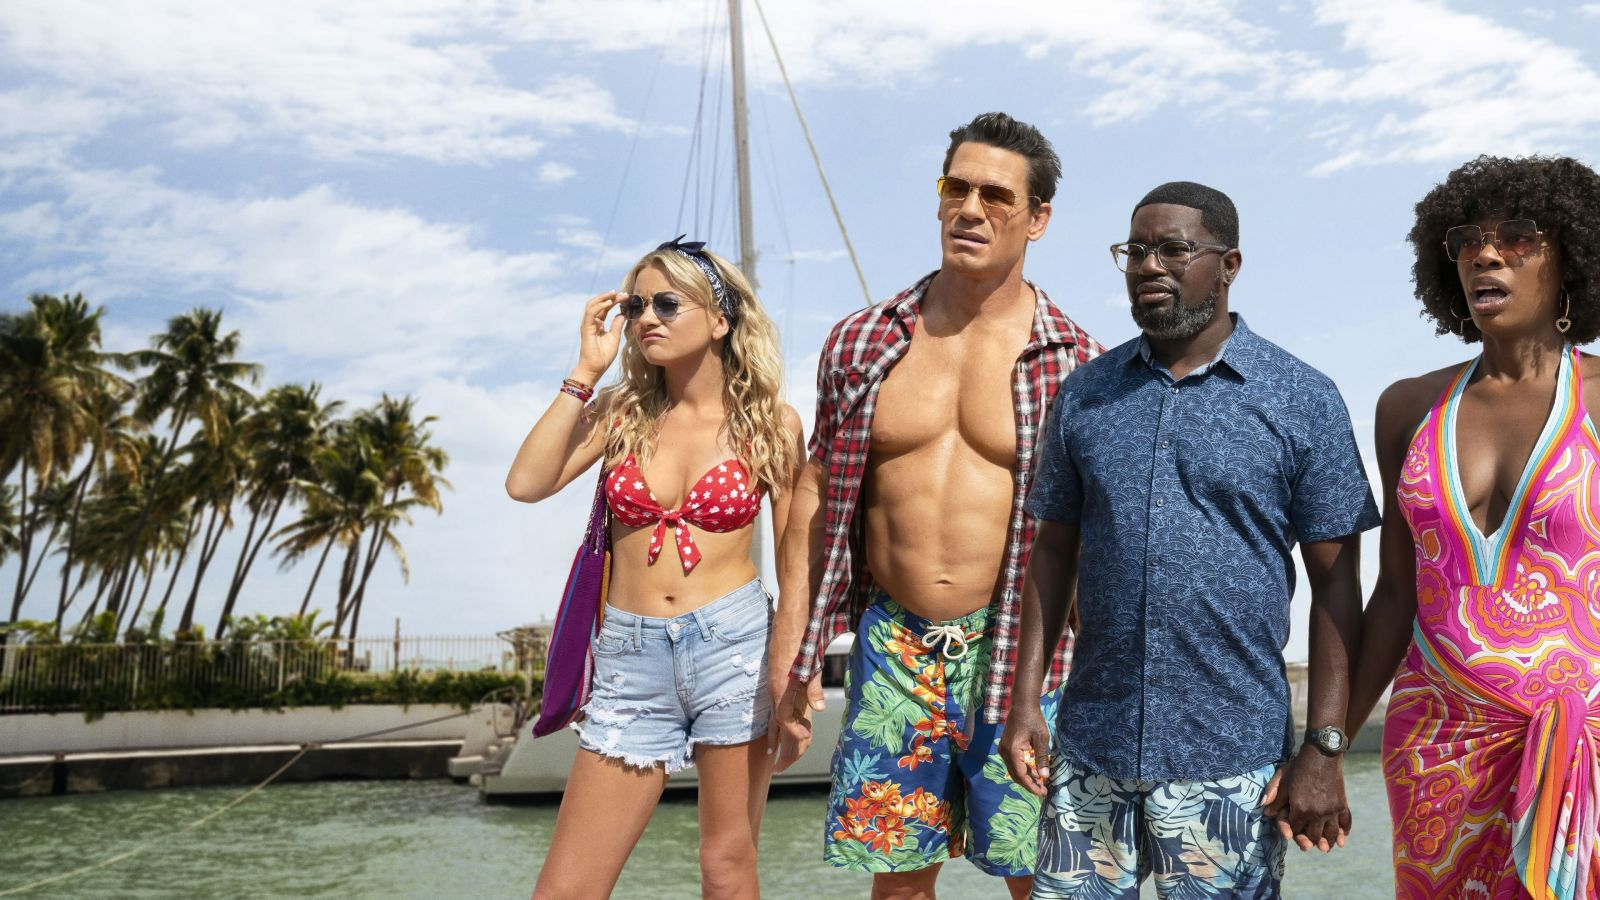 Vacation Friends (2021) Full Movies Full HD Watch Online Free Full